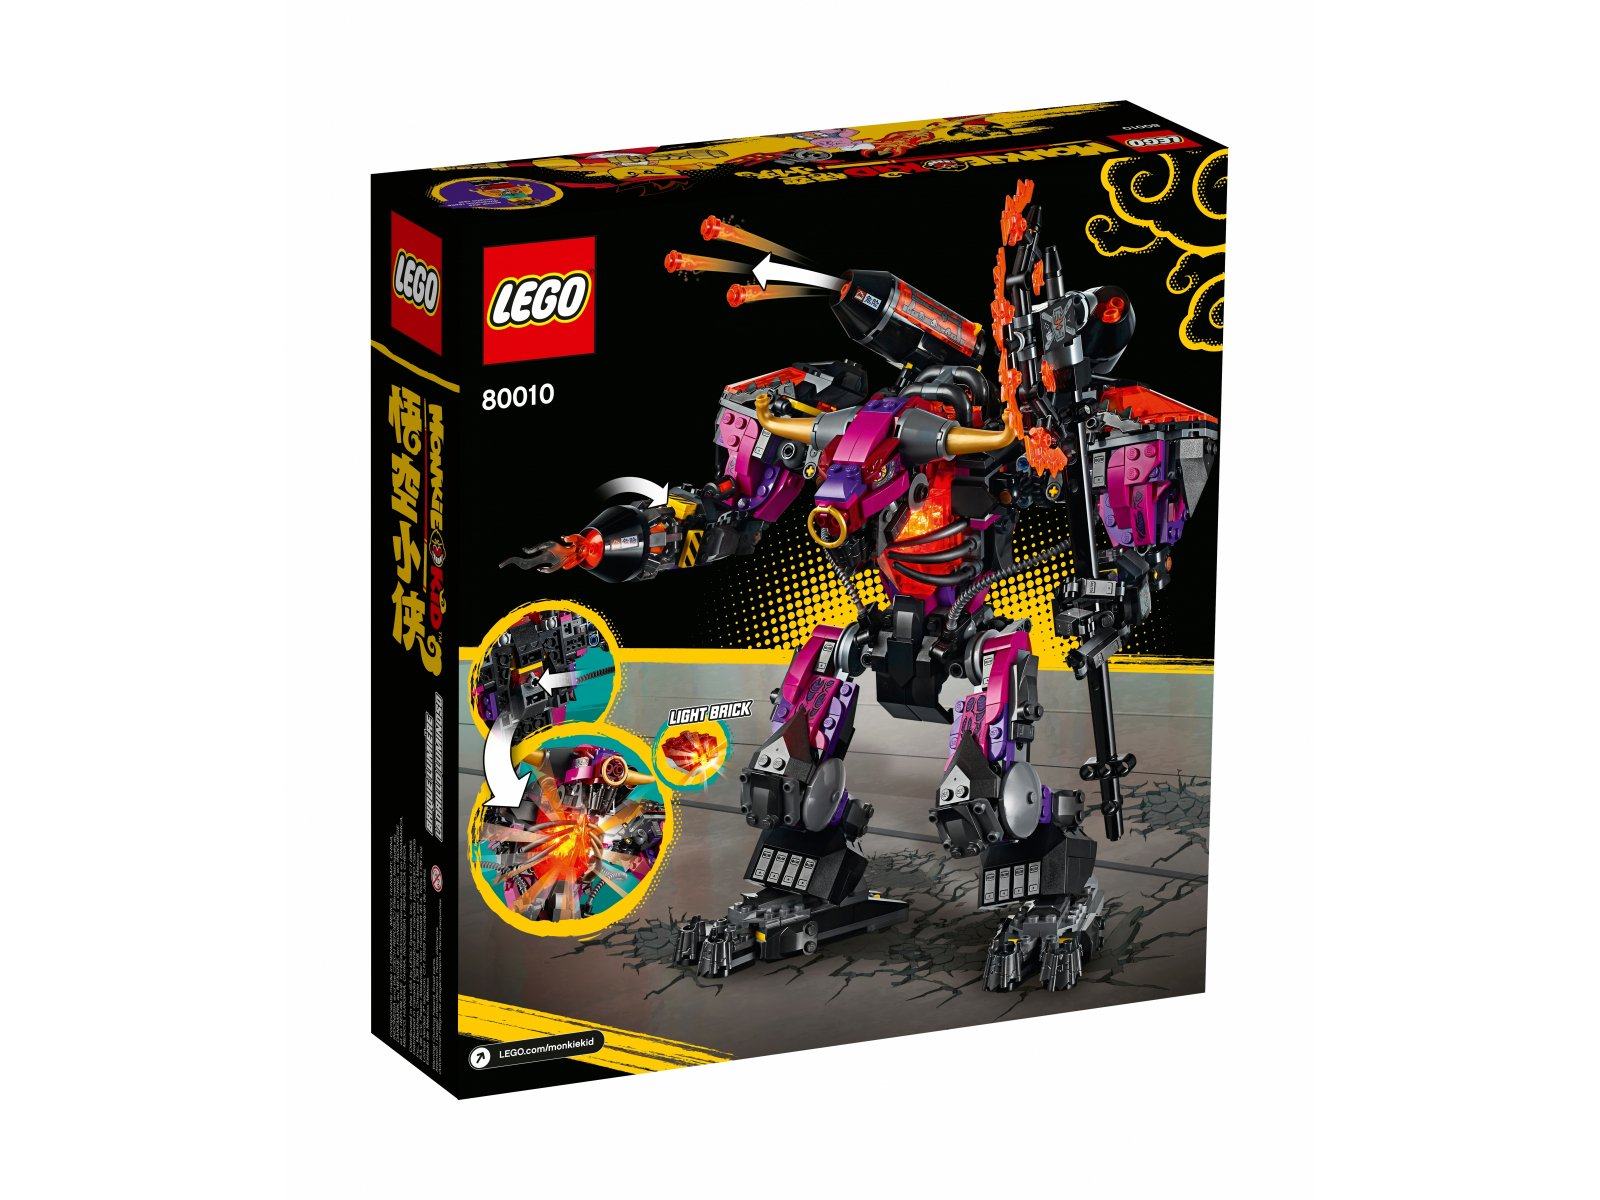 LEGO 80010 Monkie Kid Demon Bull King